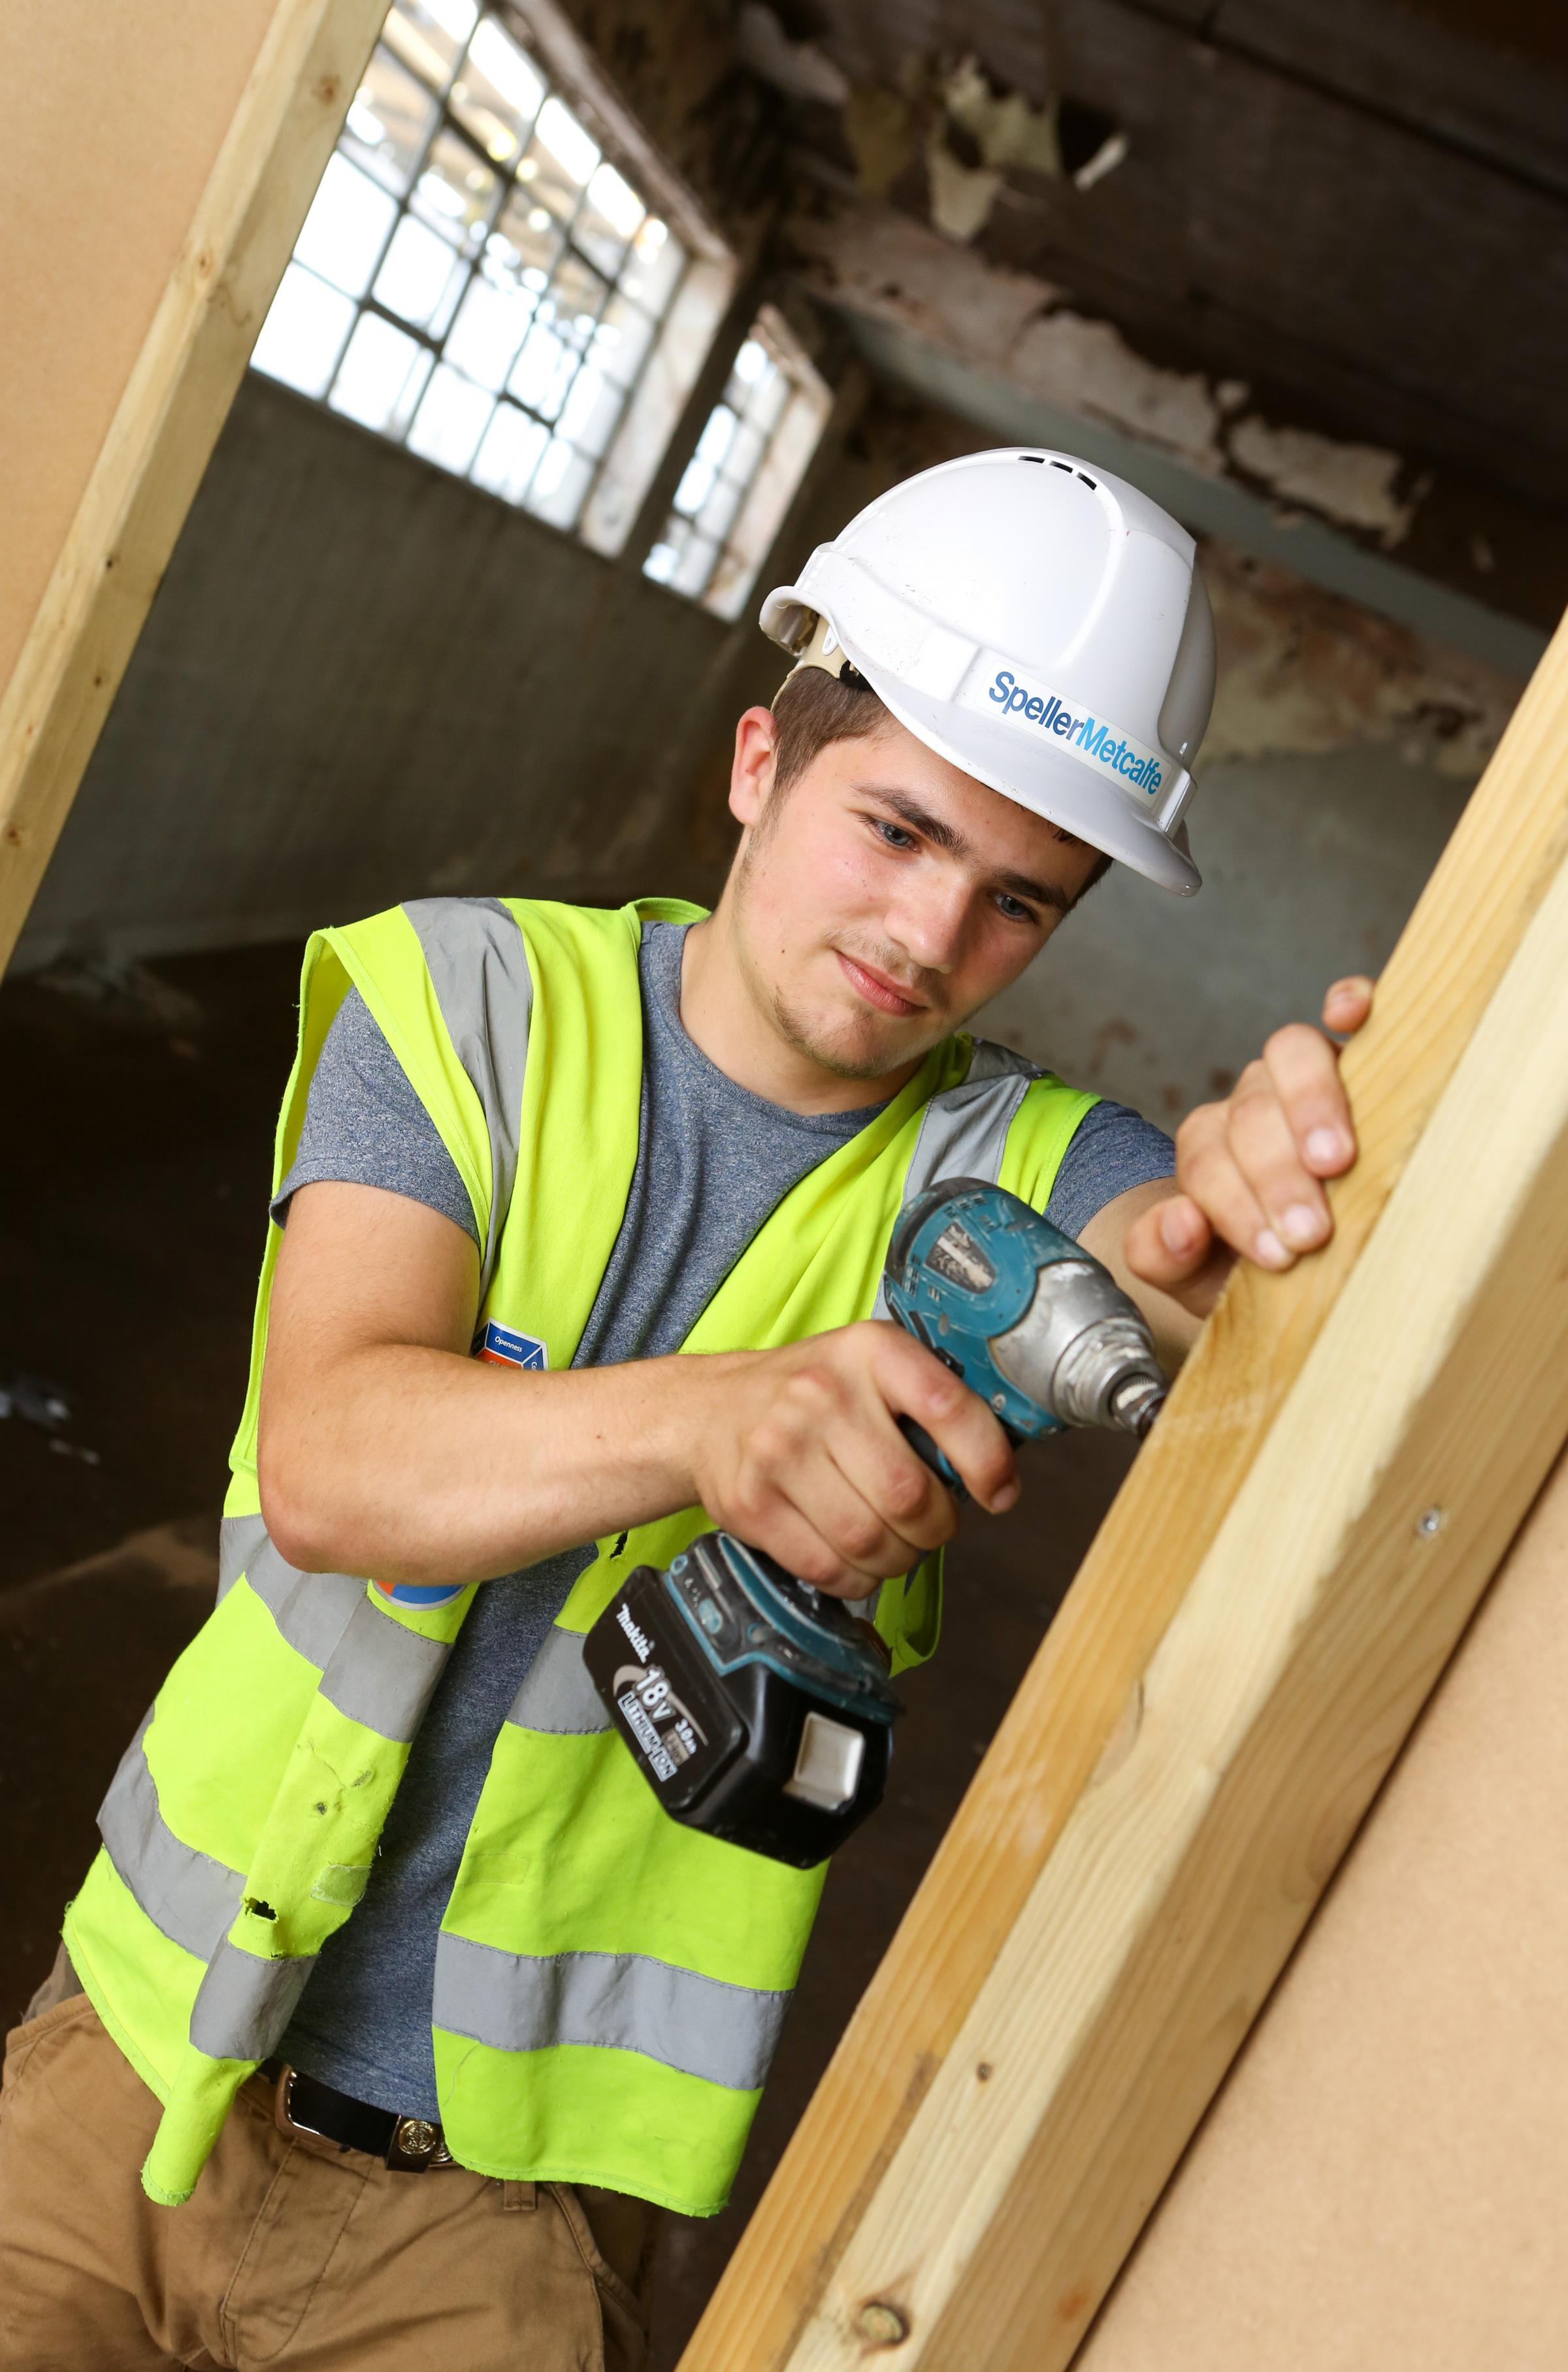 We need more apprentices, say council